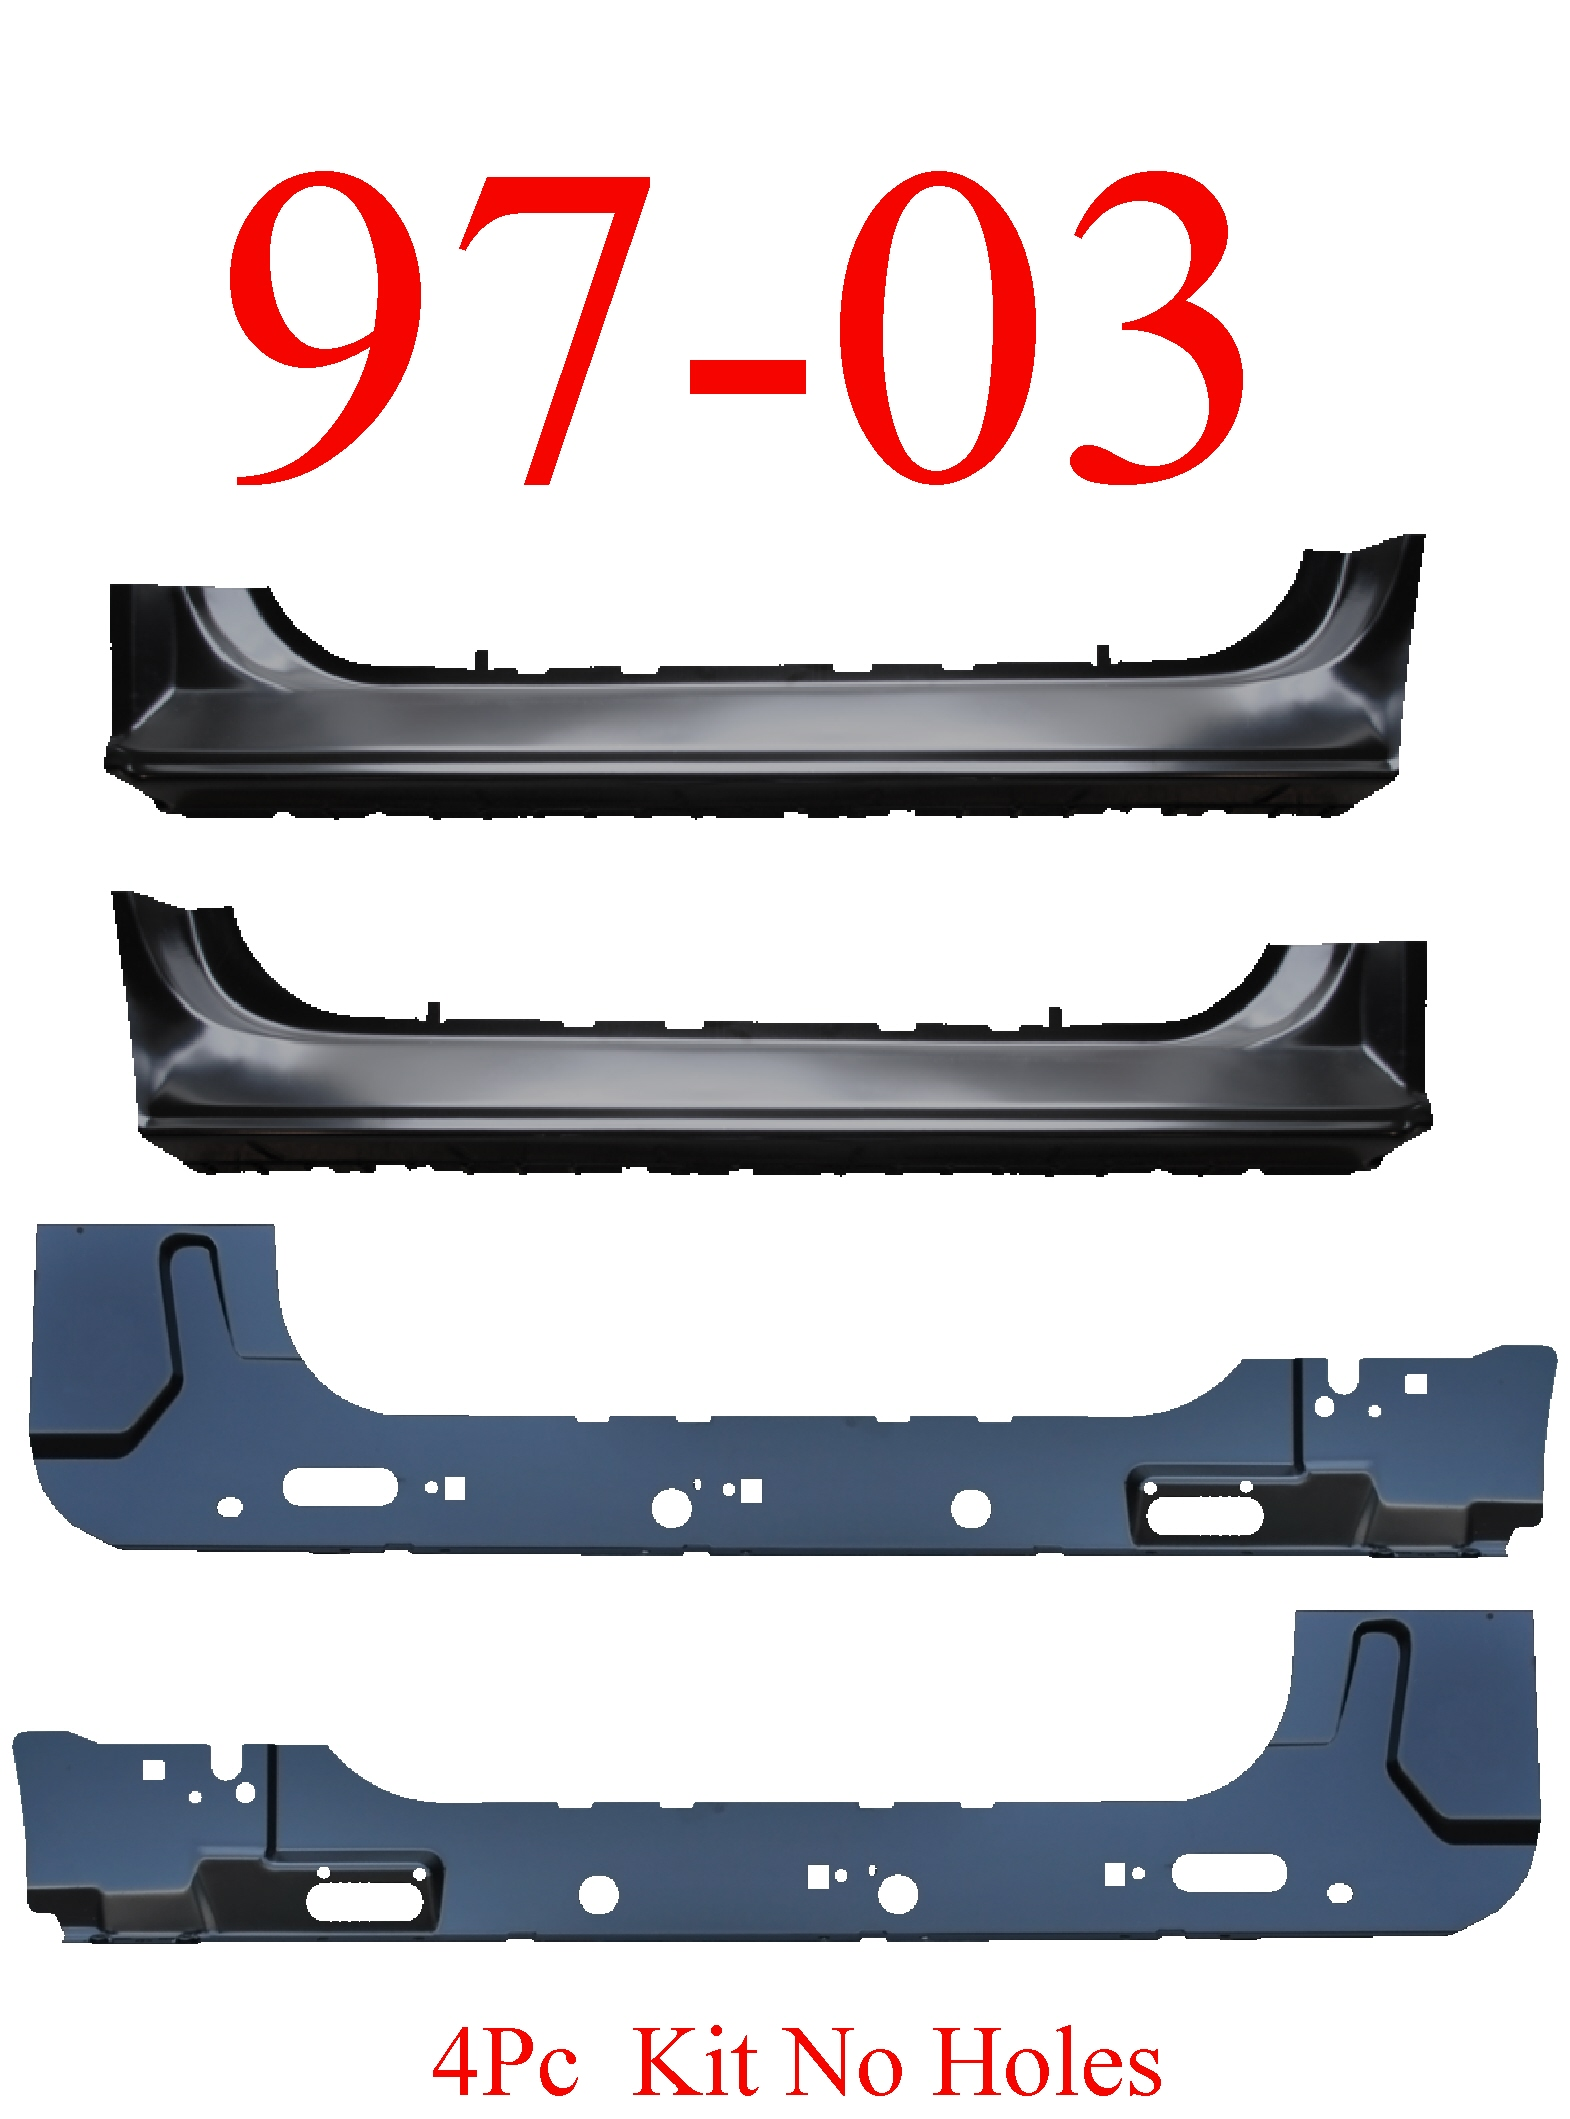 97-03 F150 4Pc Extended Rocker & Inner Rocker Kit No Holes